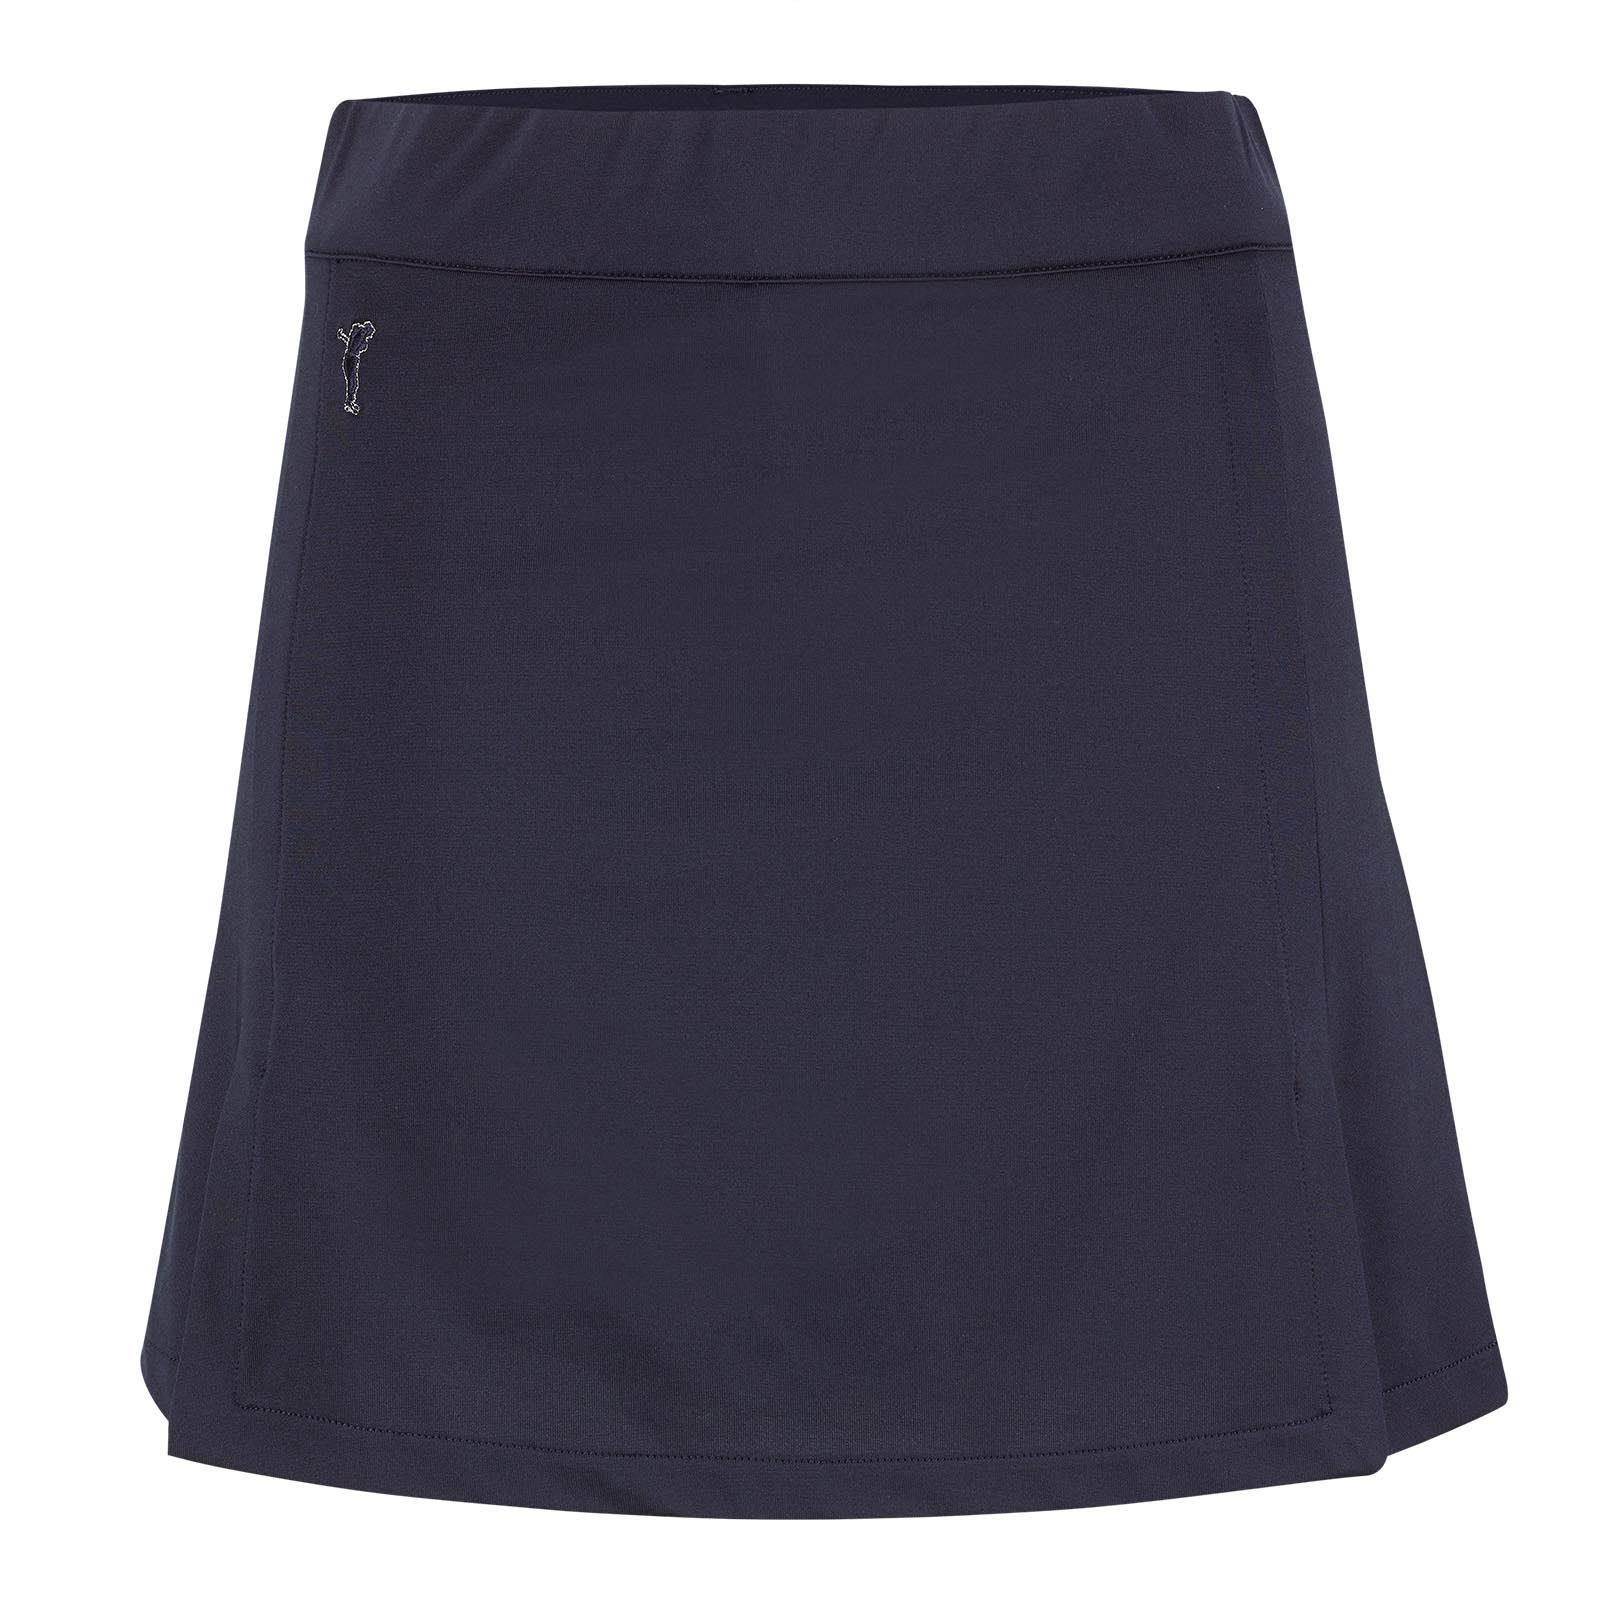 Super short Ladies' golf skort made from elastic stretch jersey